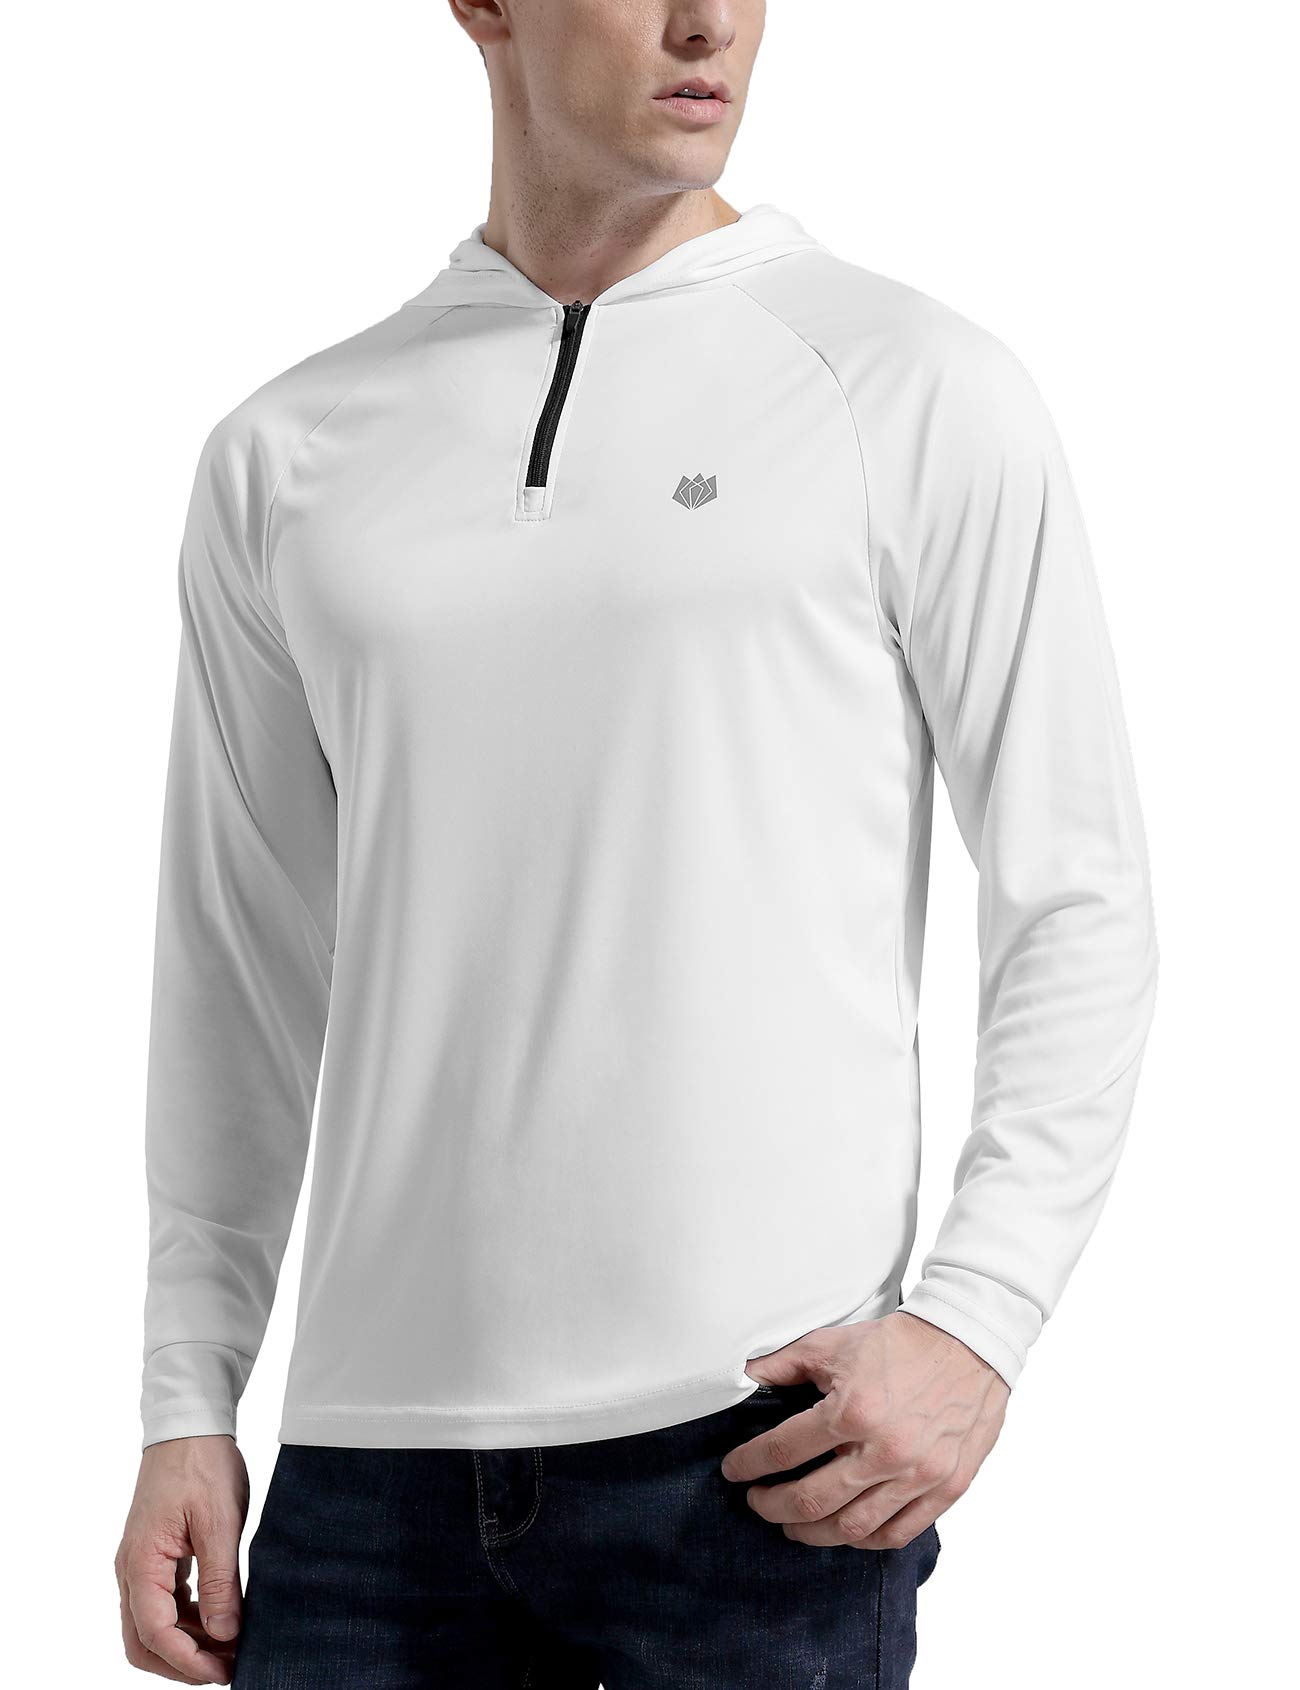 FitsT4 Men's UPF 50+ Sun Protection Hoodie Outdoor Long Sleeve Performance Quick Drying Fishing Shirts with Thumb Hole